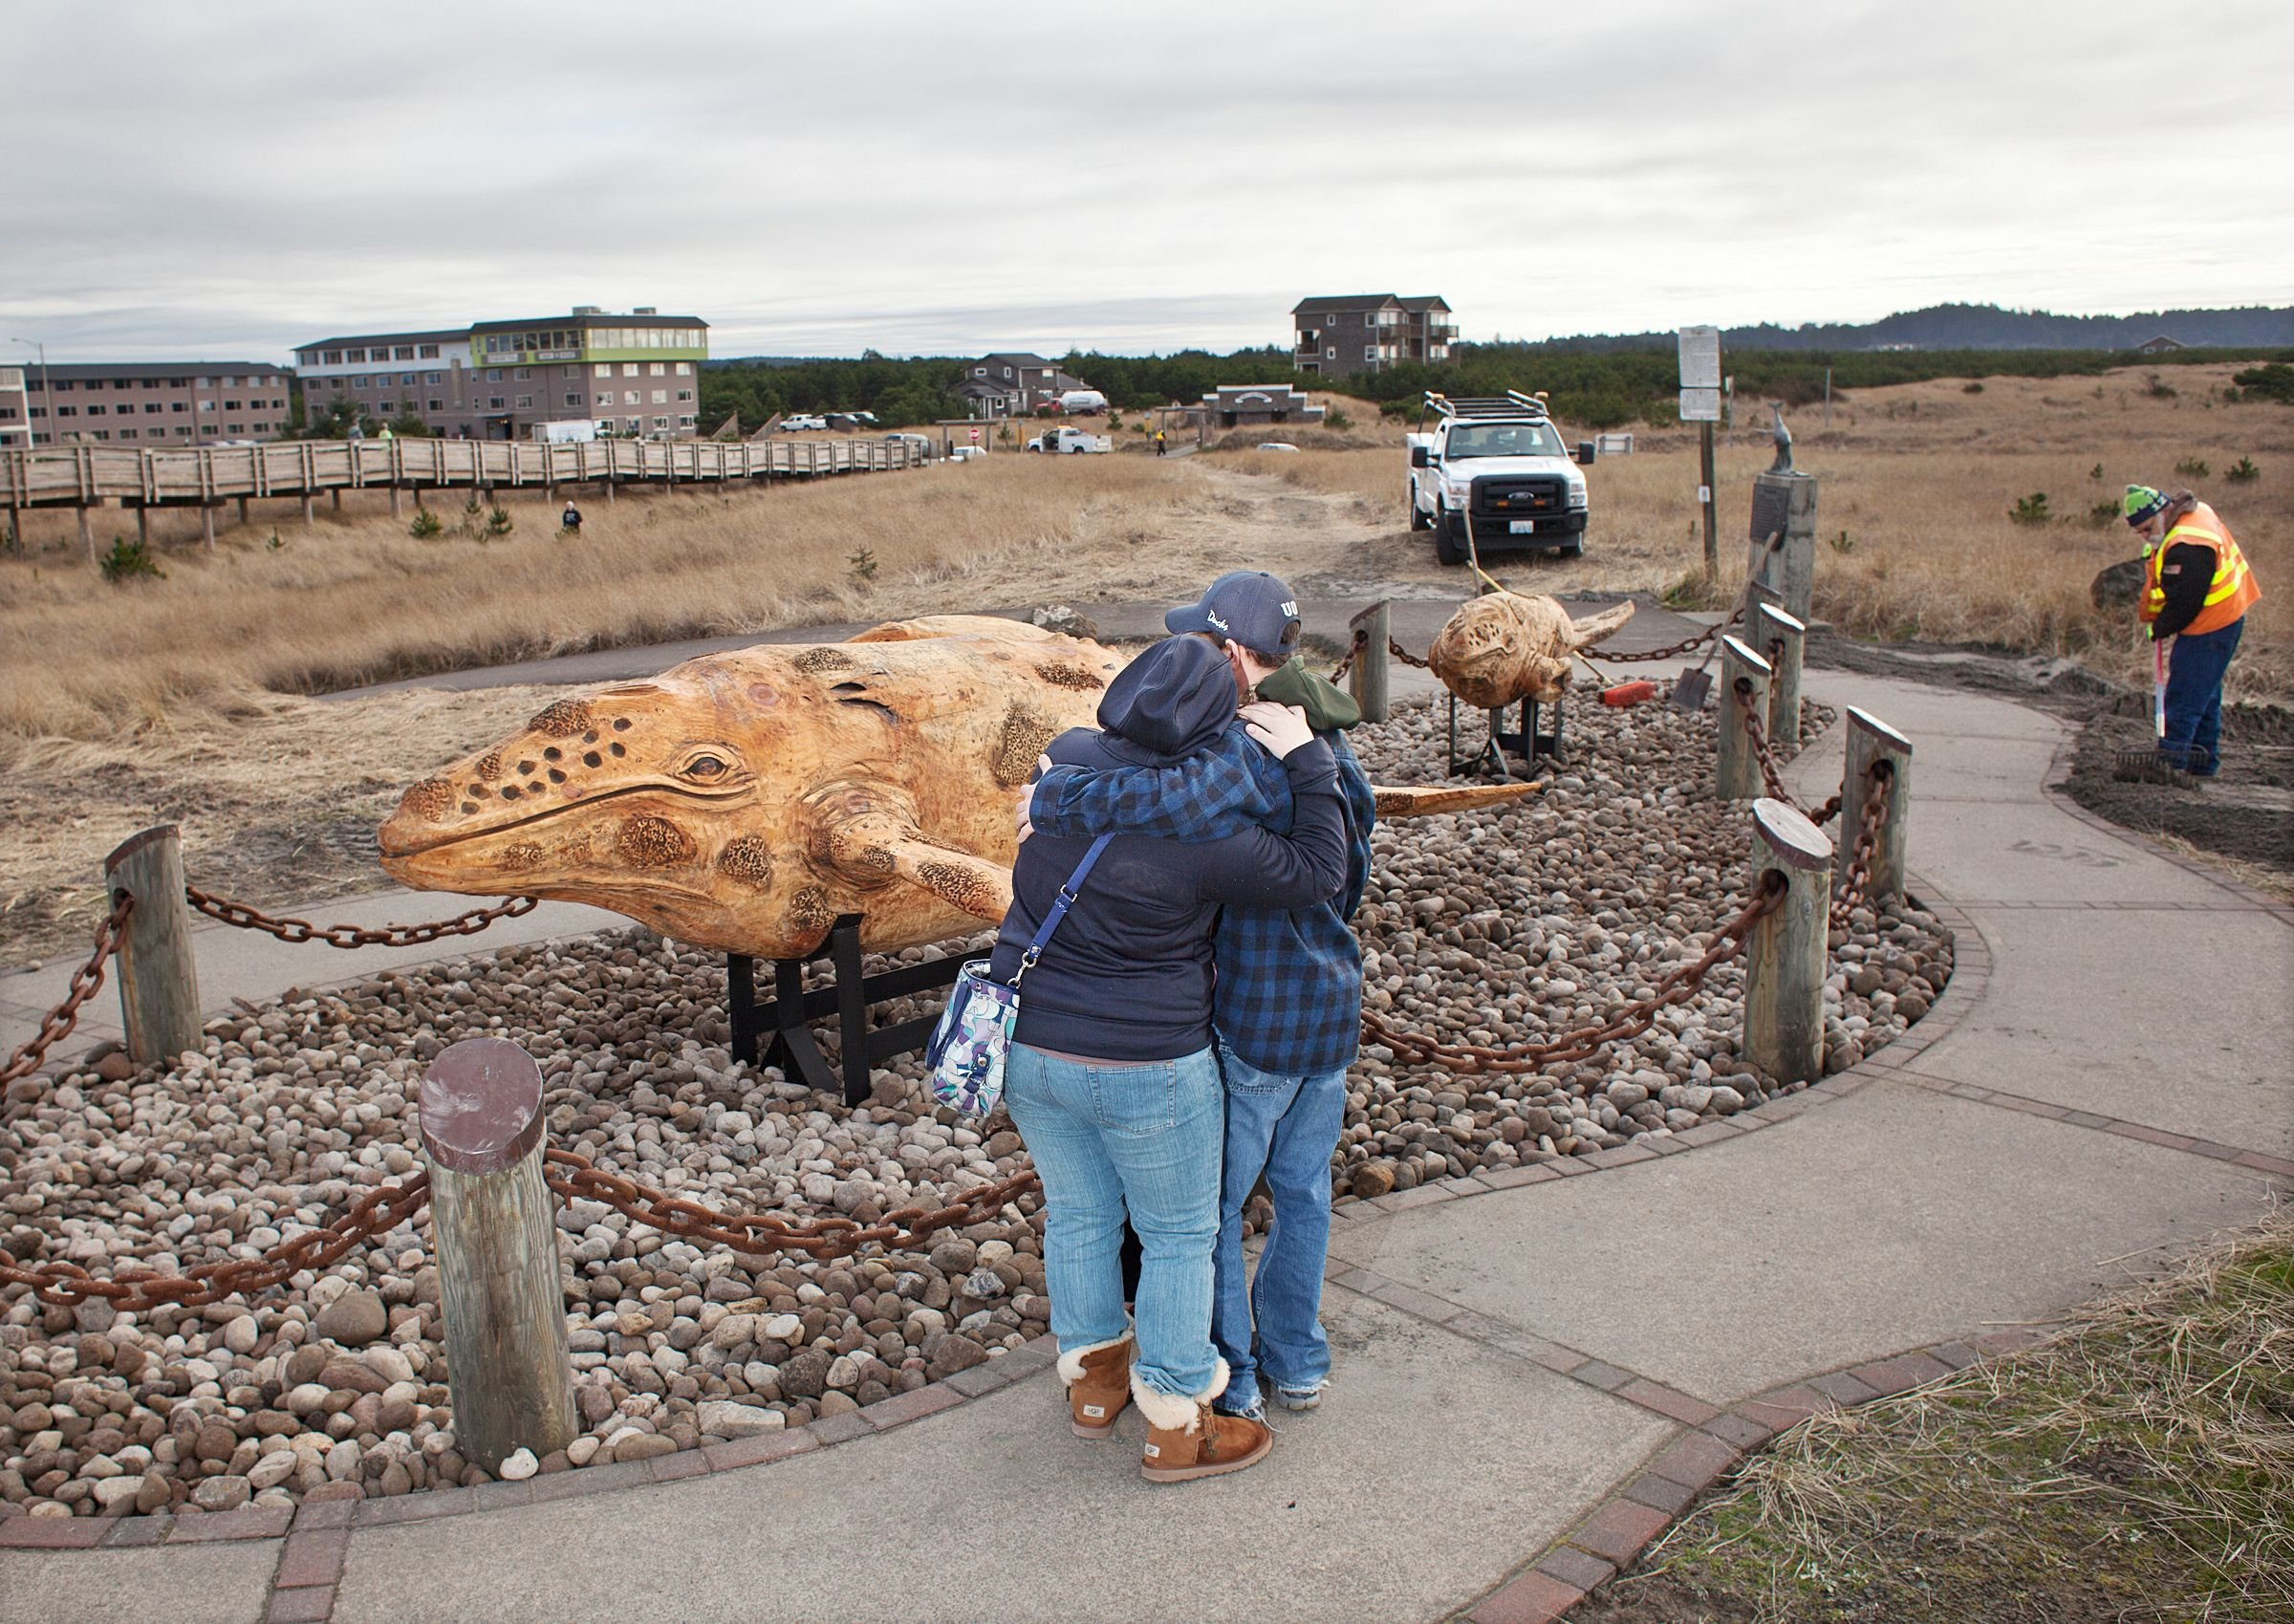 Corps Of Decomposition Long Beach Turns To Whale Carvings After A Stinky Adventure With The Real Thing Wildlife Fishing And Outdoors Chinookobserver Com Long beach tides updated daily. https www chinookobserver com life outdoors corps of decomposition long beach turns to whale carvings after a stinky adventure with the article 91649dfc 29e0 527a 9800 6861f5bebd45 html